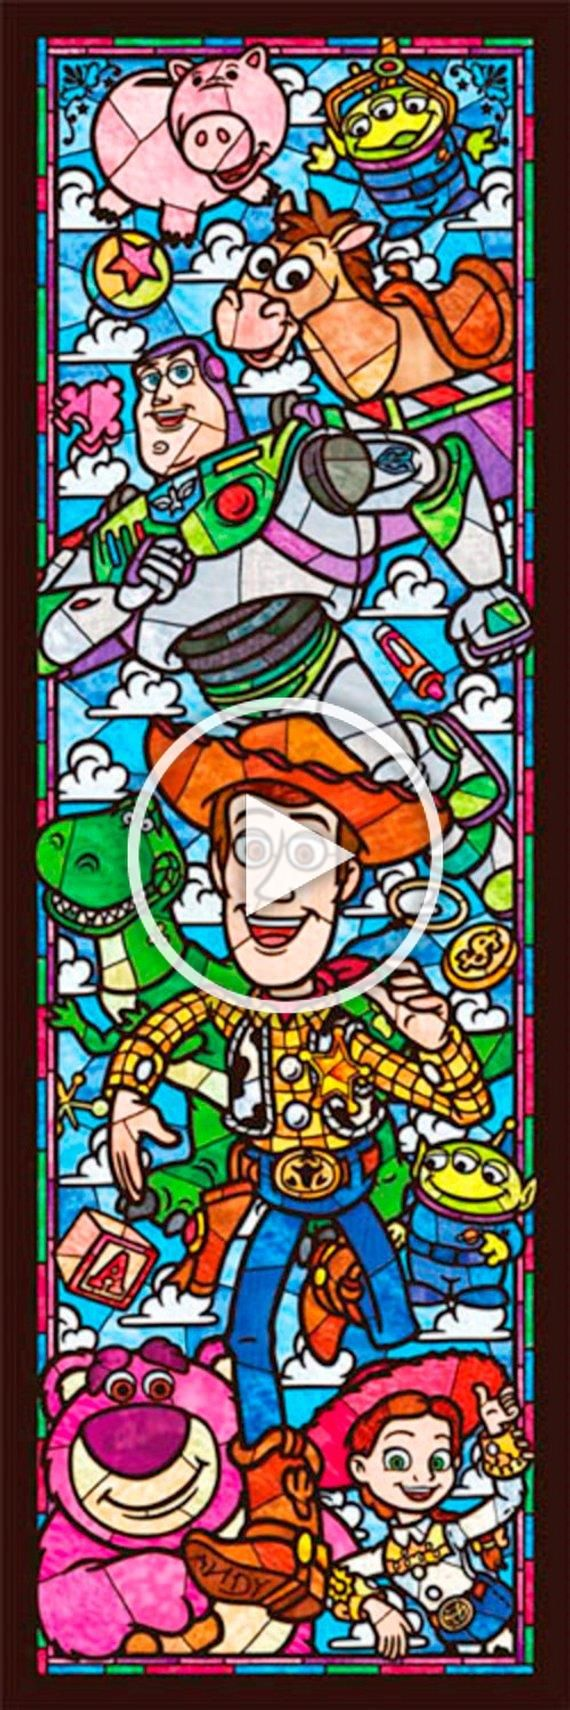 Photo of BUY 2, GET 1 FREE!Toy Story Disney Stained Glass 088 Cross Stitch Pattern Counte…